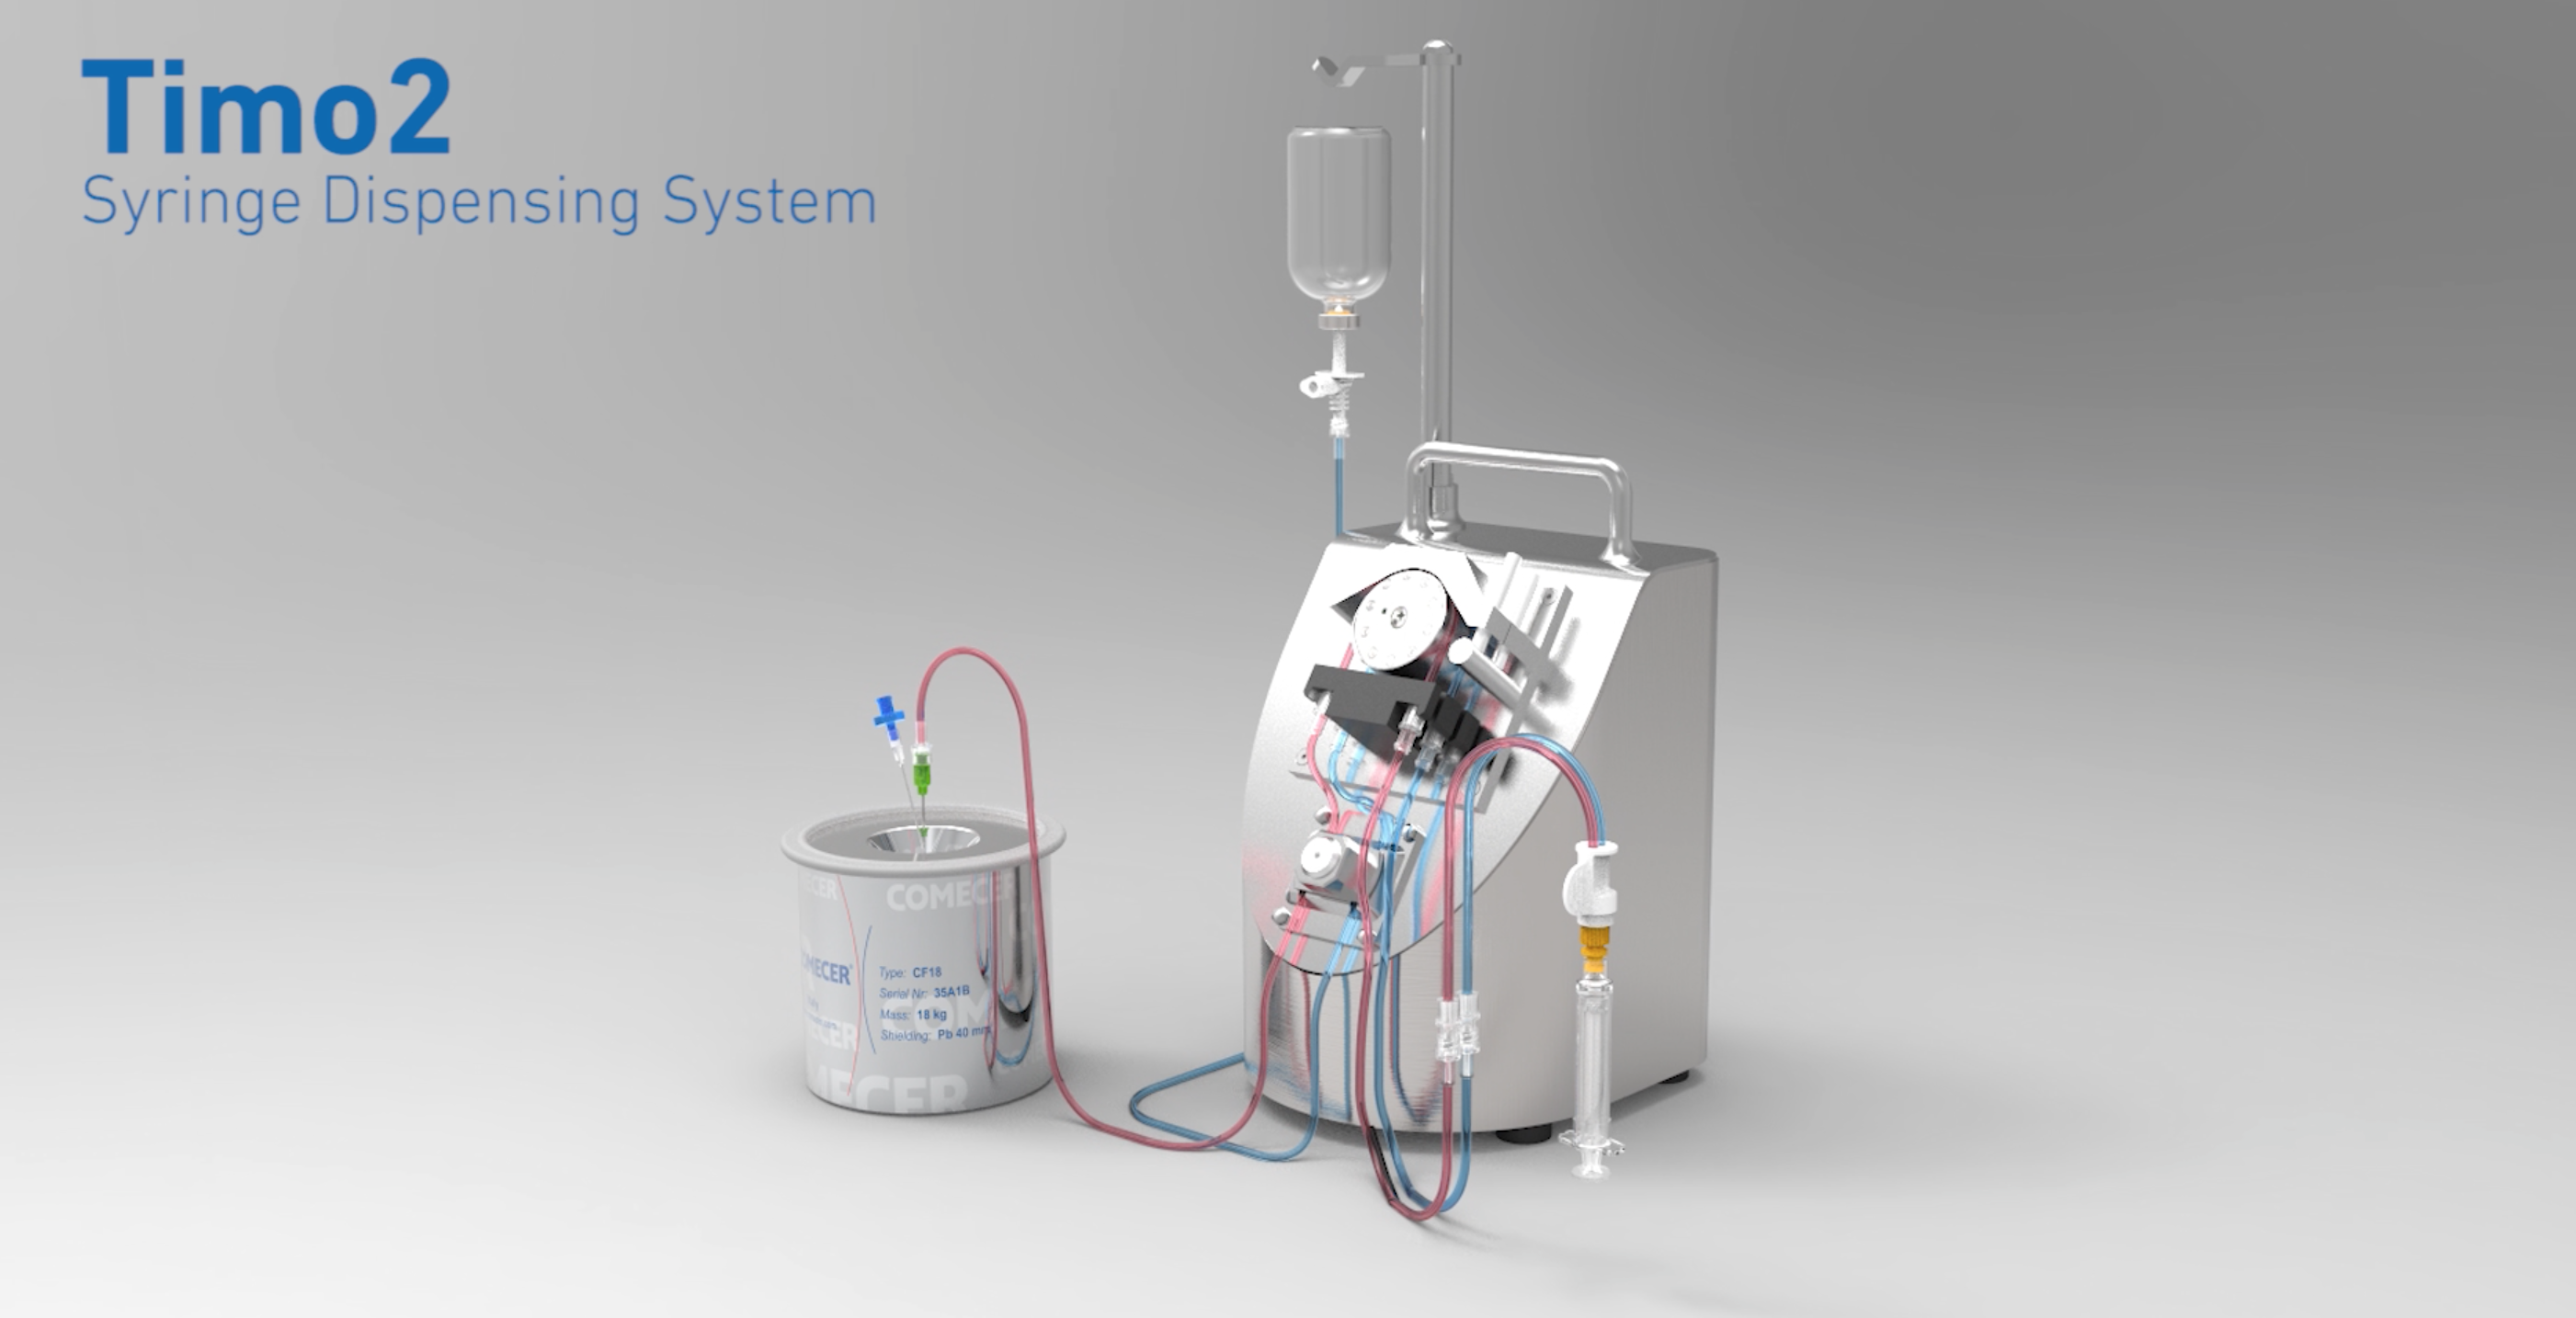 TIMO 2 - Syringe Dispensing System for Nuclear Medicine Departments